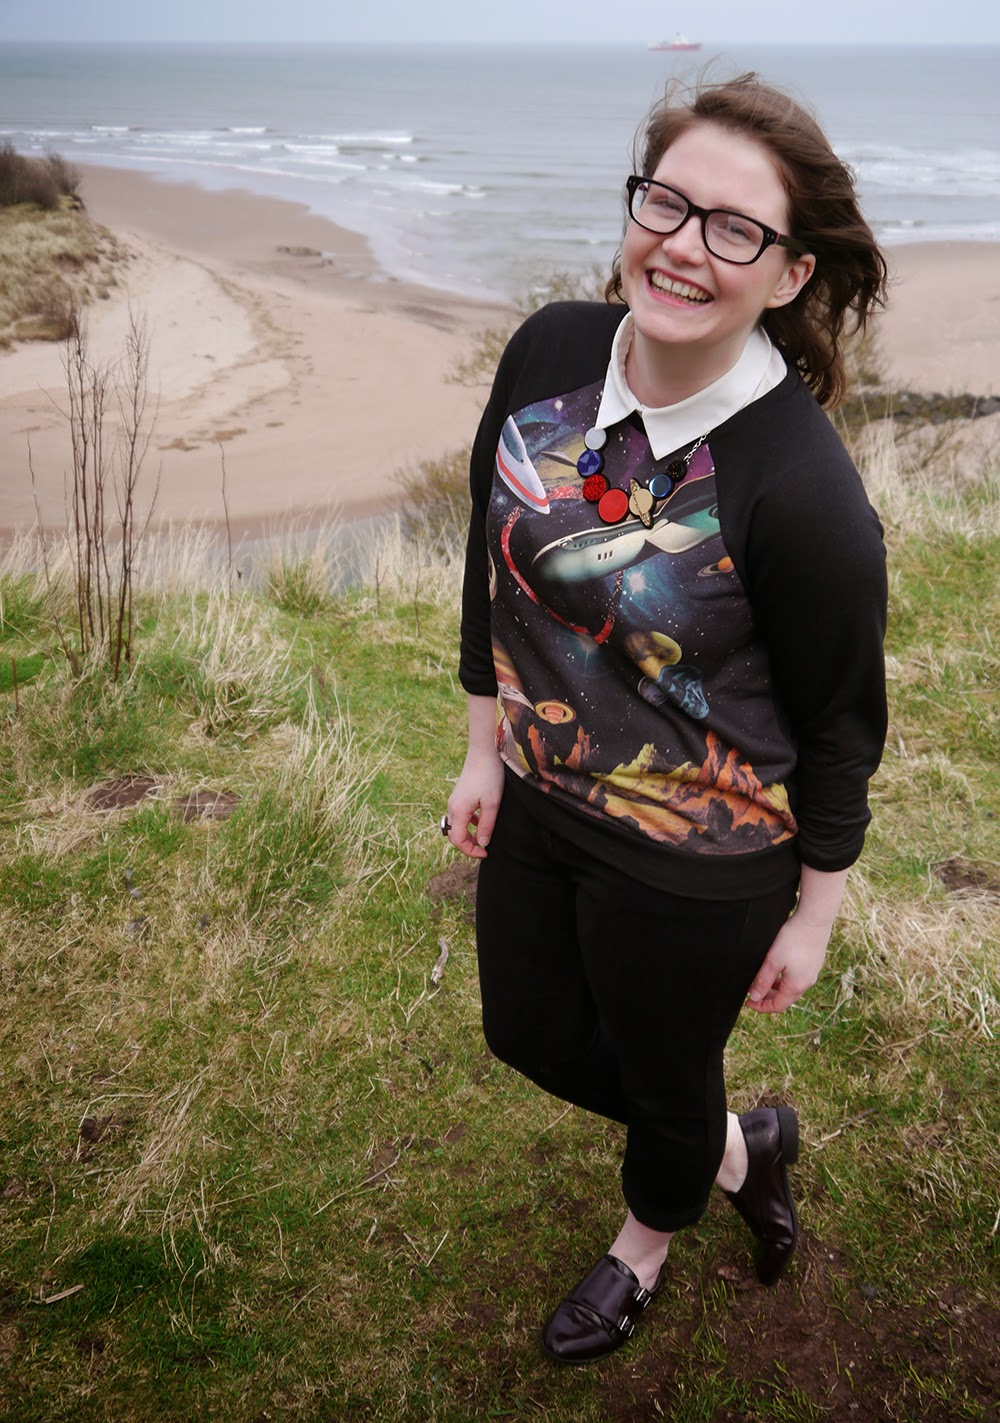 Be Our Guest, Guest Post, Little Sister, Scottish Blogger, Heather Mac, Mac In Your Face, Space Style, Topshop space jumper, Sugar & Vice space necklace, Lunan bay, Red Castle, Scotalnd, outfit post